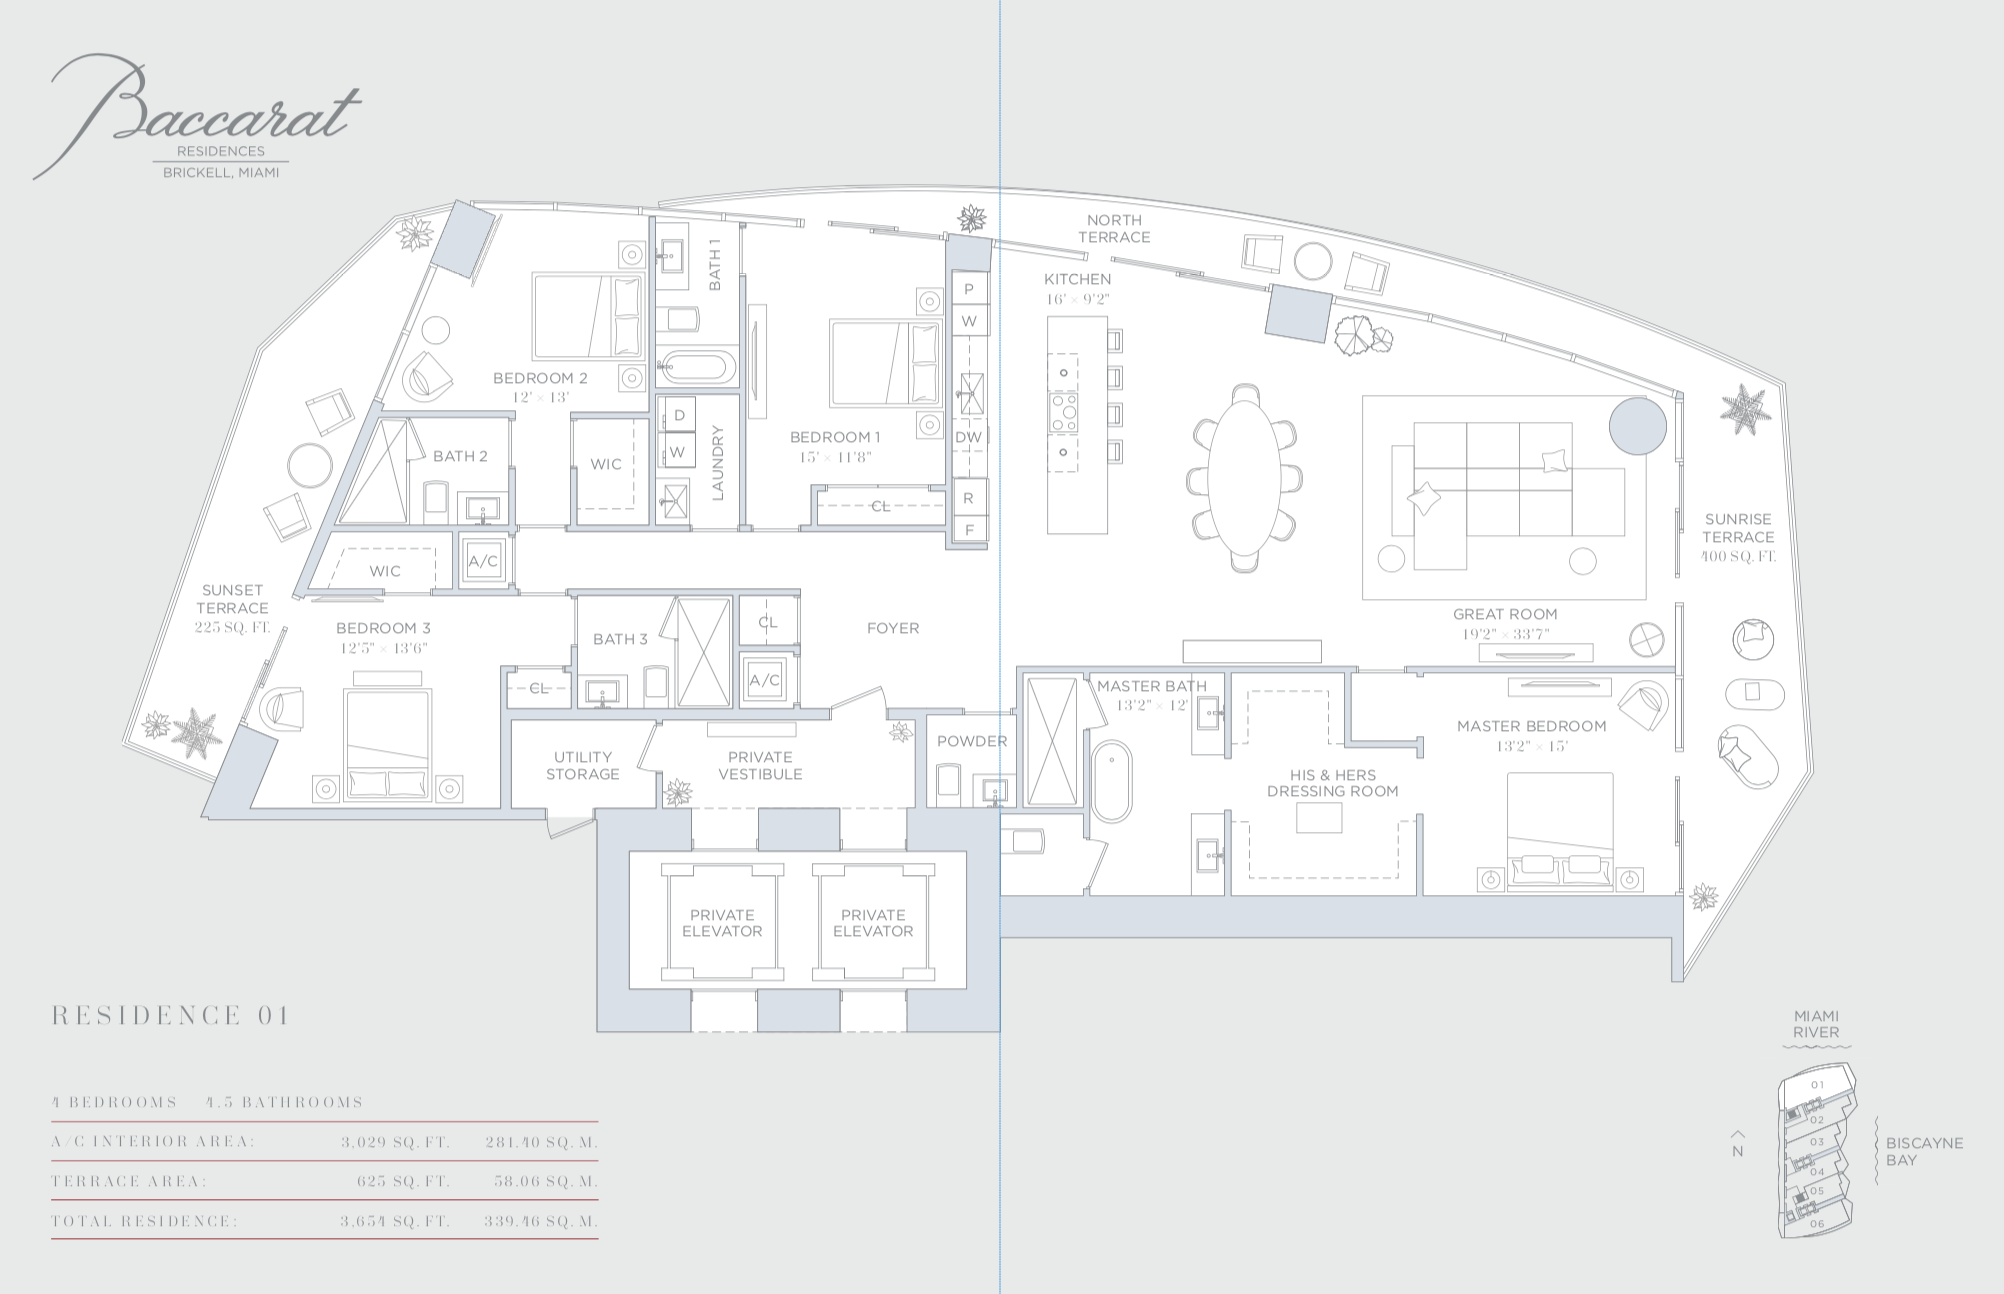 Baccarat | Residence 01 | 4 Bedrooms| 3,029 SF